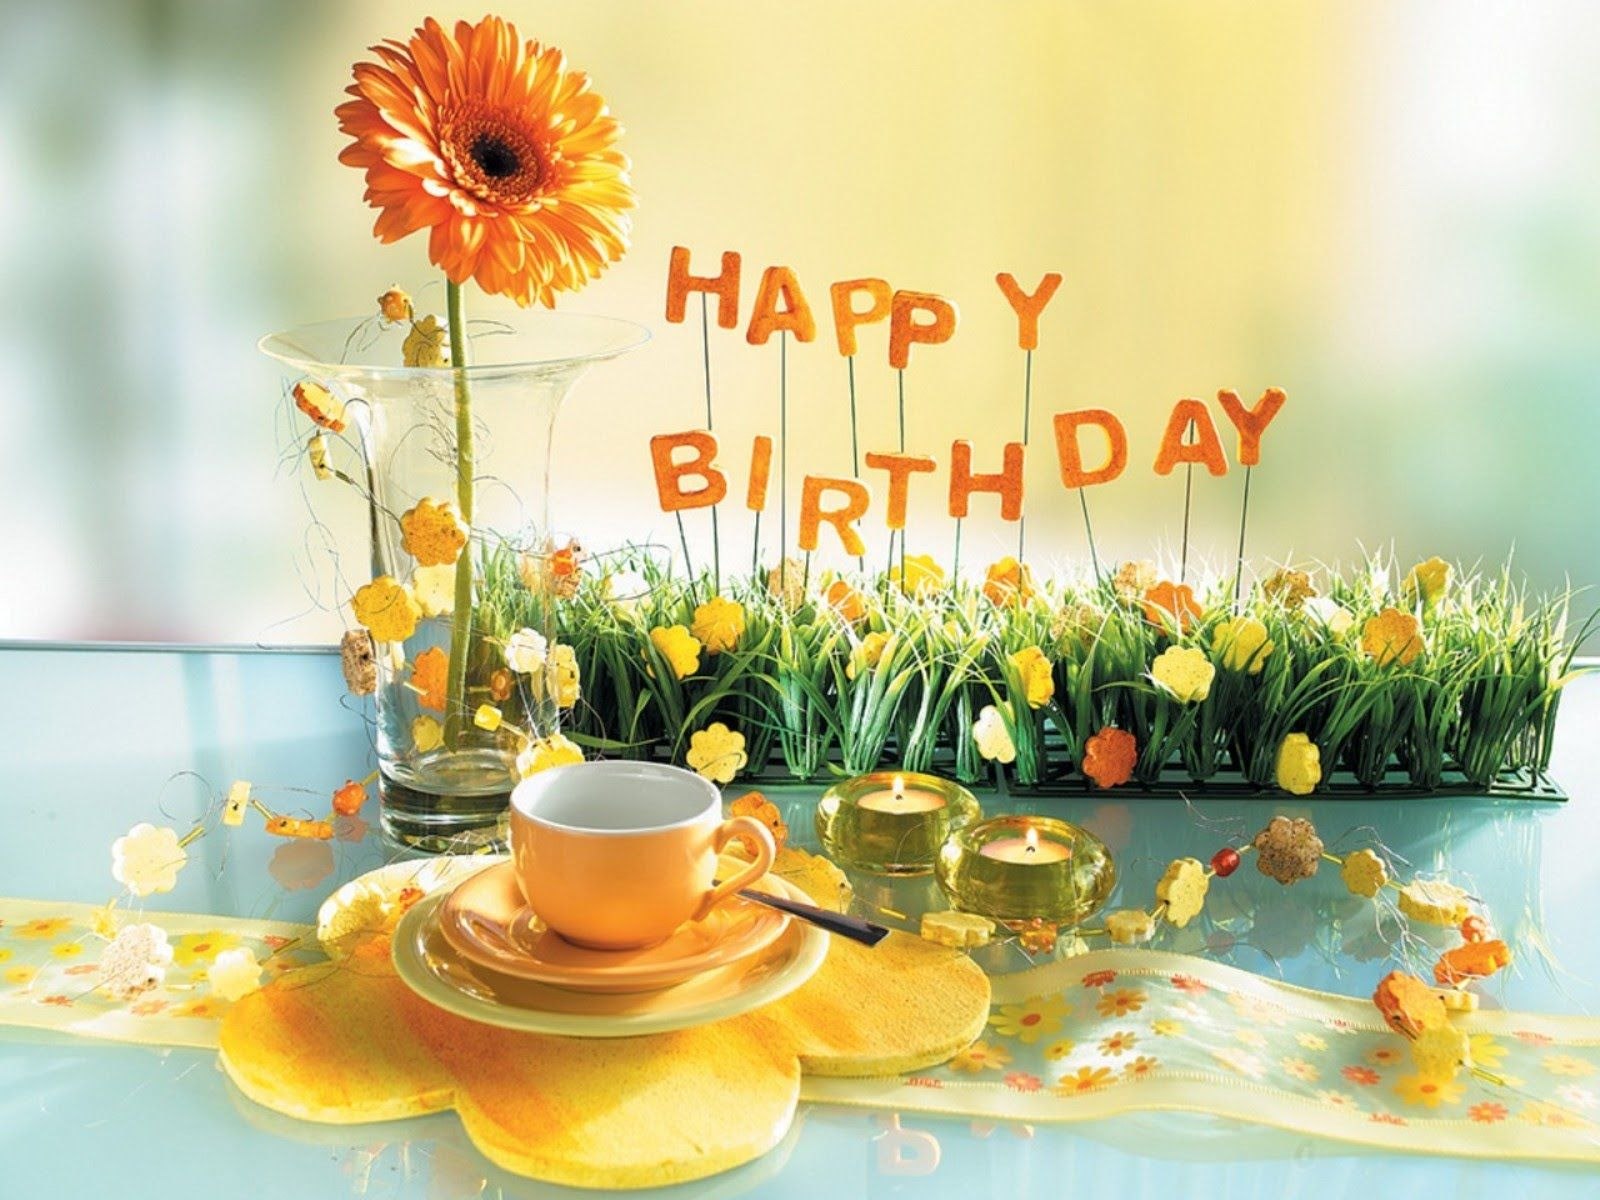 happy birthday wishes for friend 2015 latest pictures HD